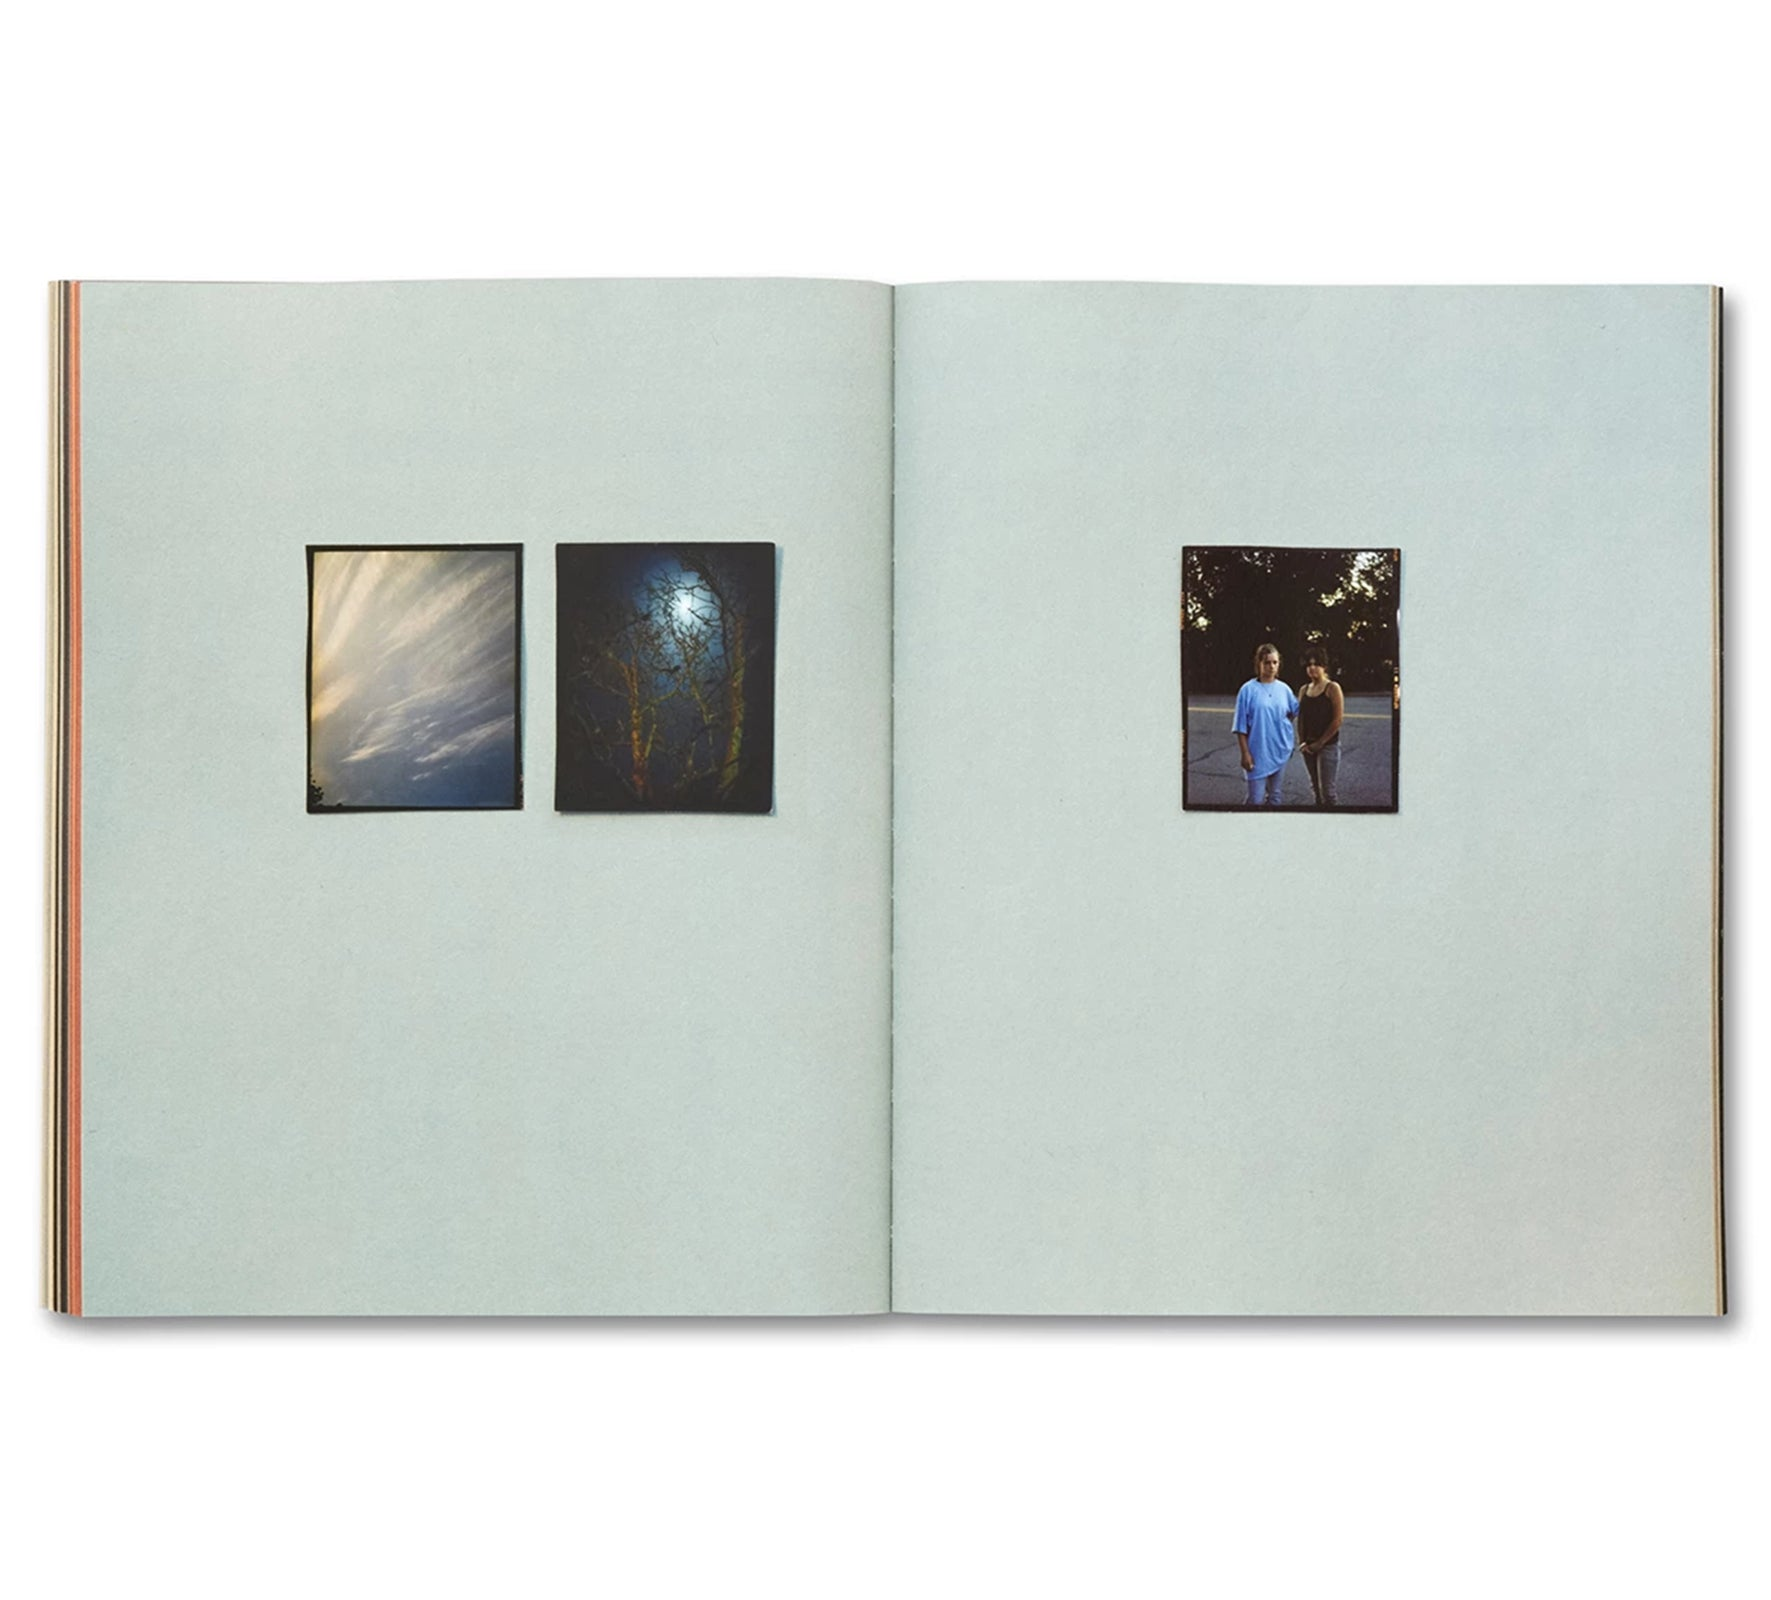 OMAHA SKETCHBOOK by Gregory Halpern [SPECIAL BOOK EDITION]